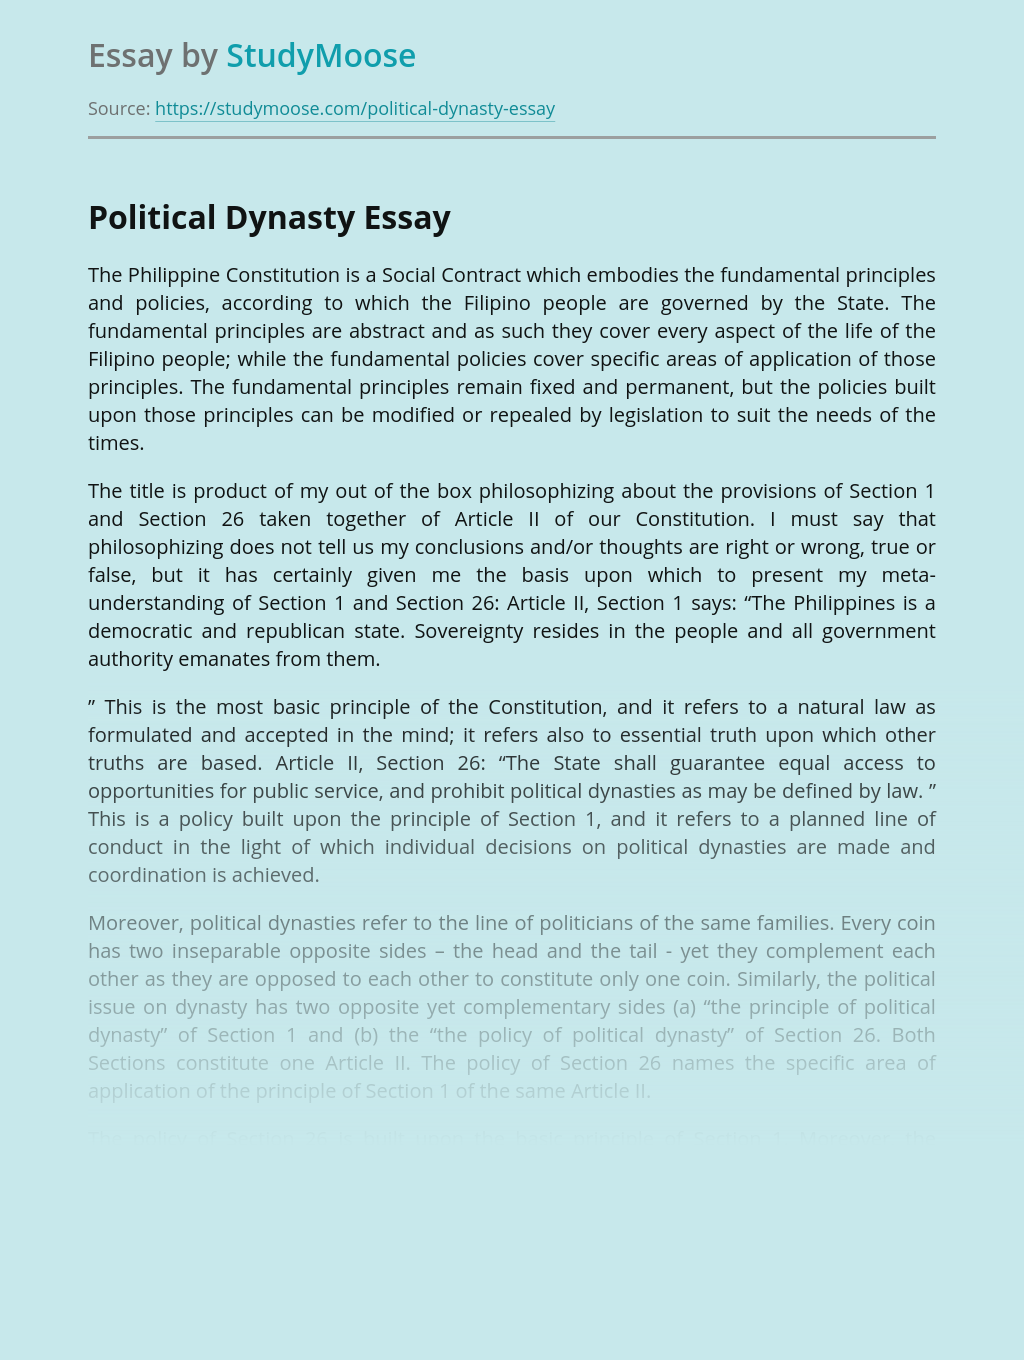 The Philippine Constitution - Political Dynasty